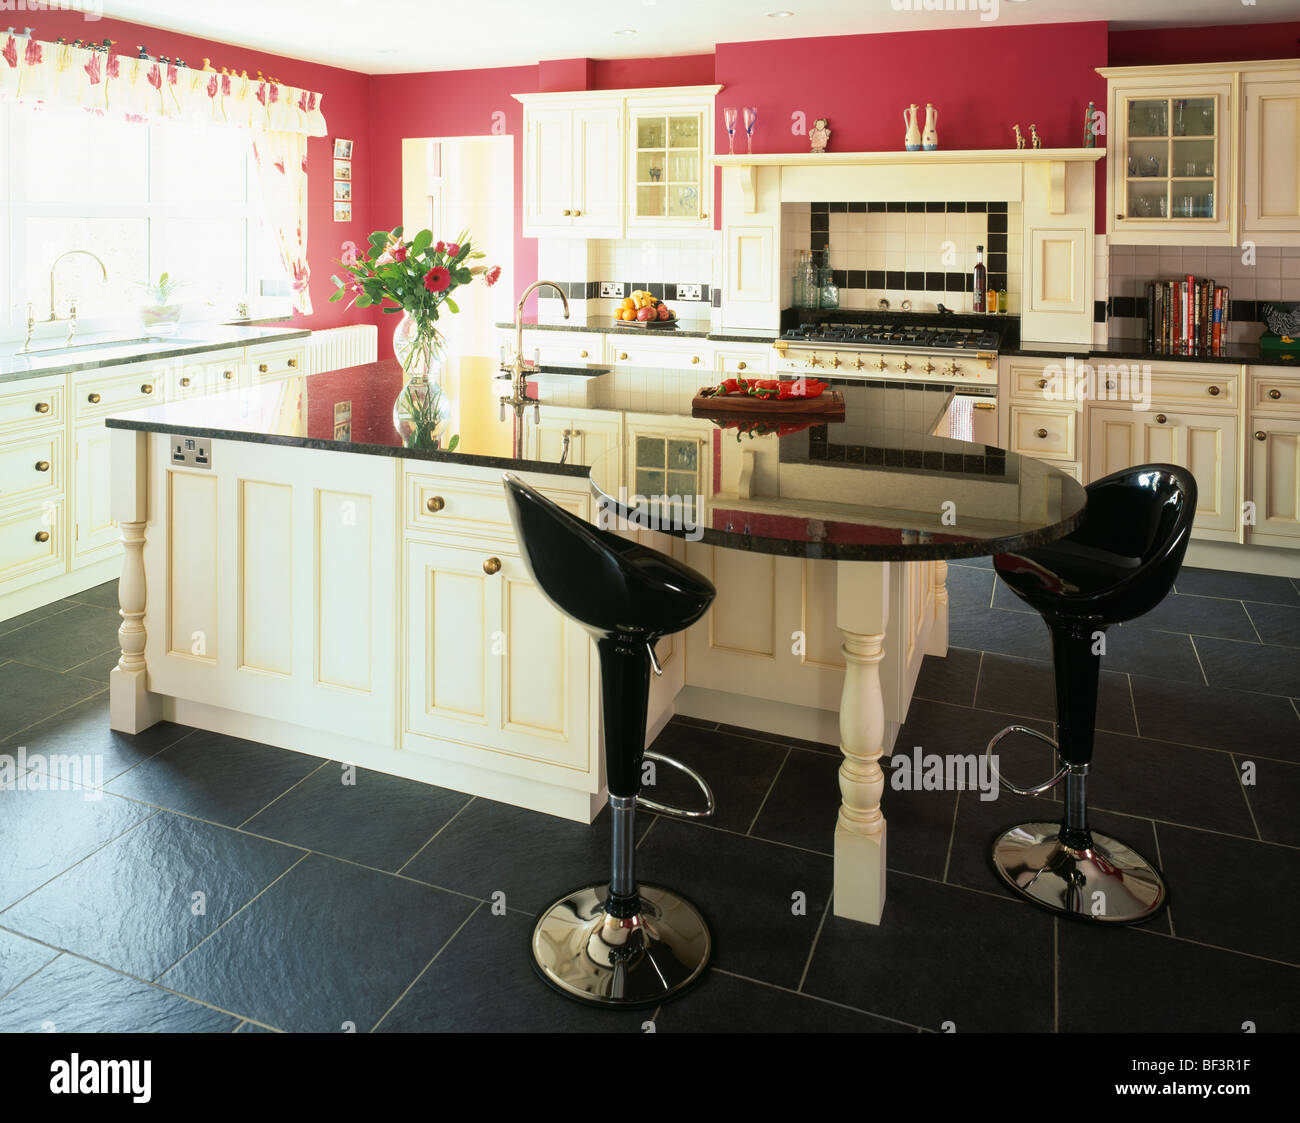 Slate Flooring For Kitchen Black Bombo Stools At Curved Breakfast Bar In Red Kitchen With